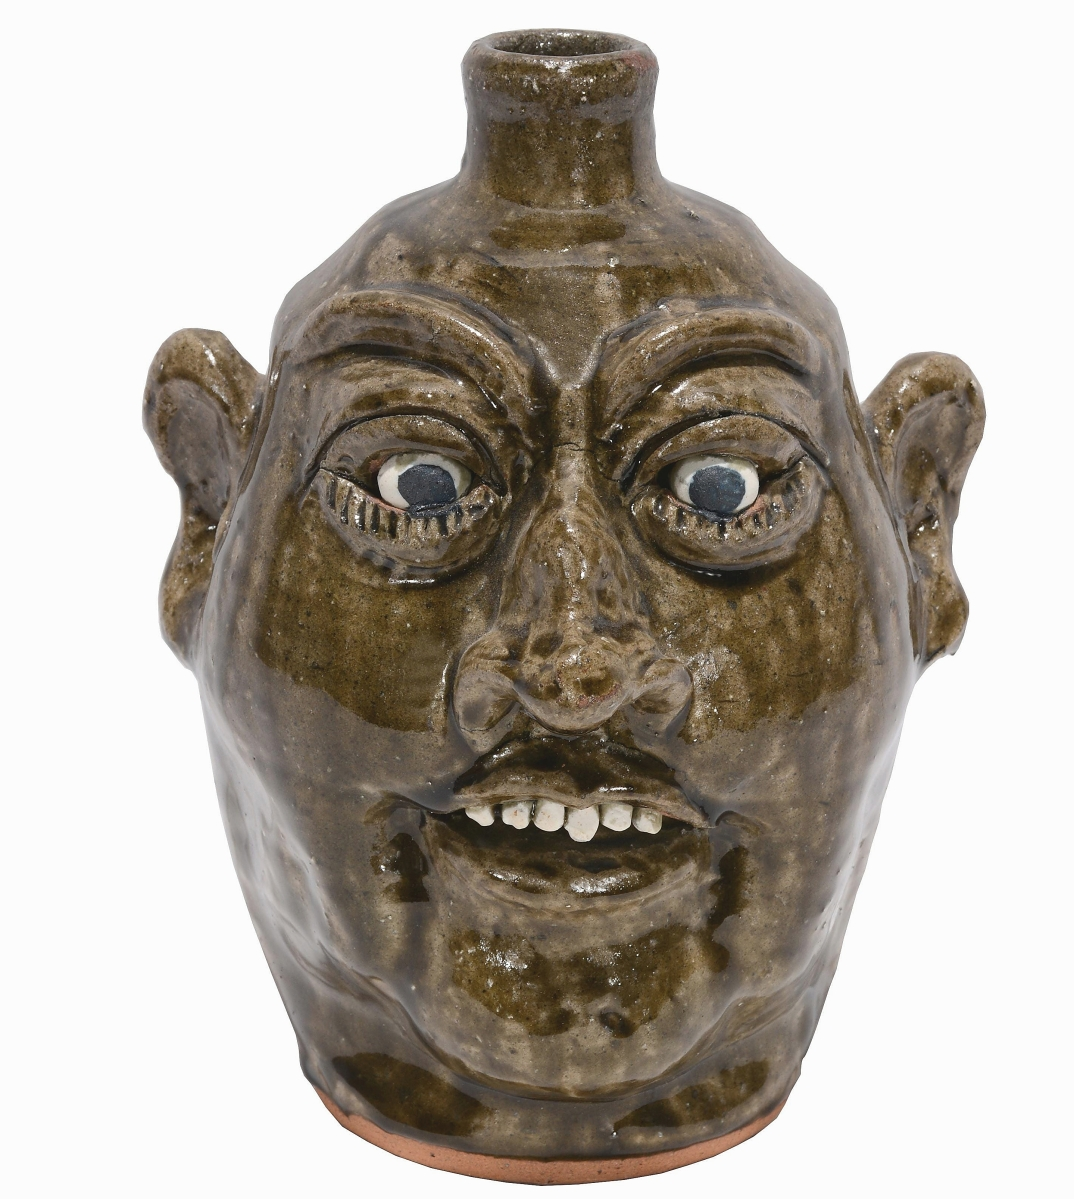 Lanier Meaders' top work in the sale was a 1988 face jug that brought $2,125. It measured 10 inches high and was in mint condition.